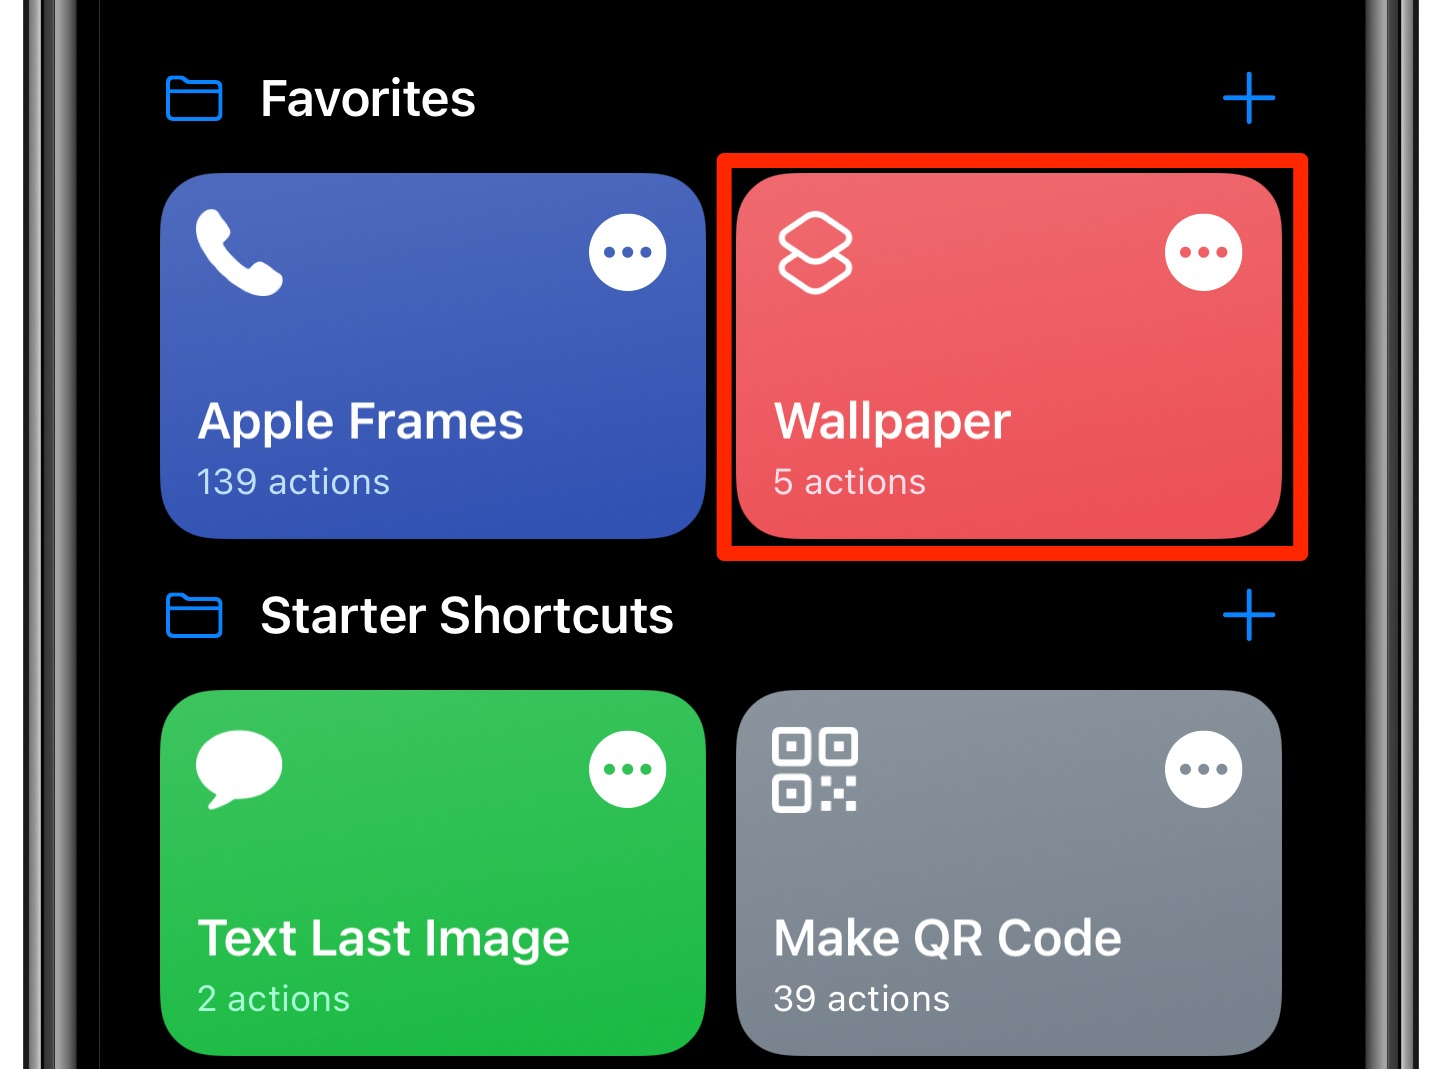 change iPhone wallpaper automatically - the Wallpaper script in the Shortcuts app